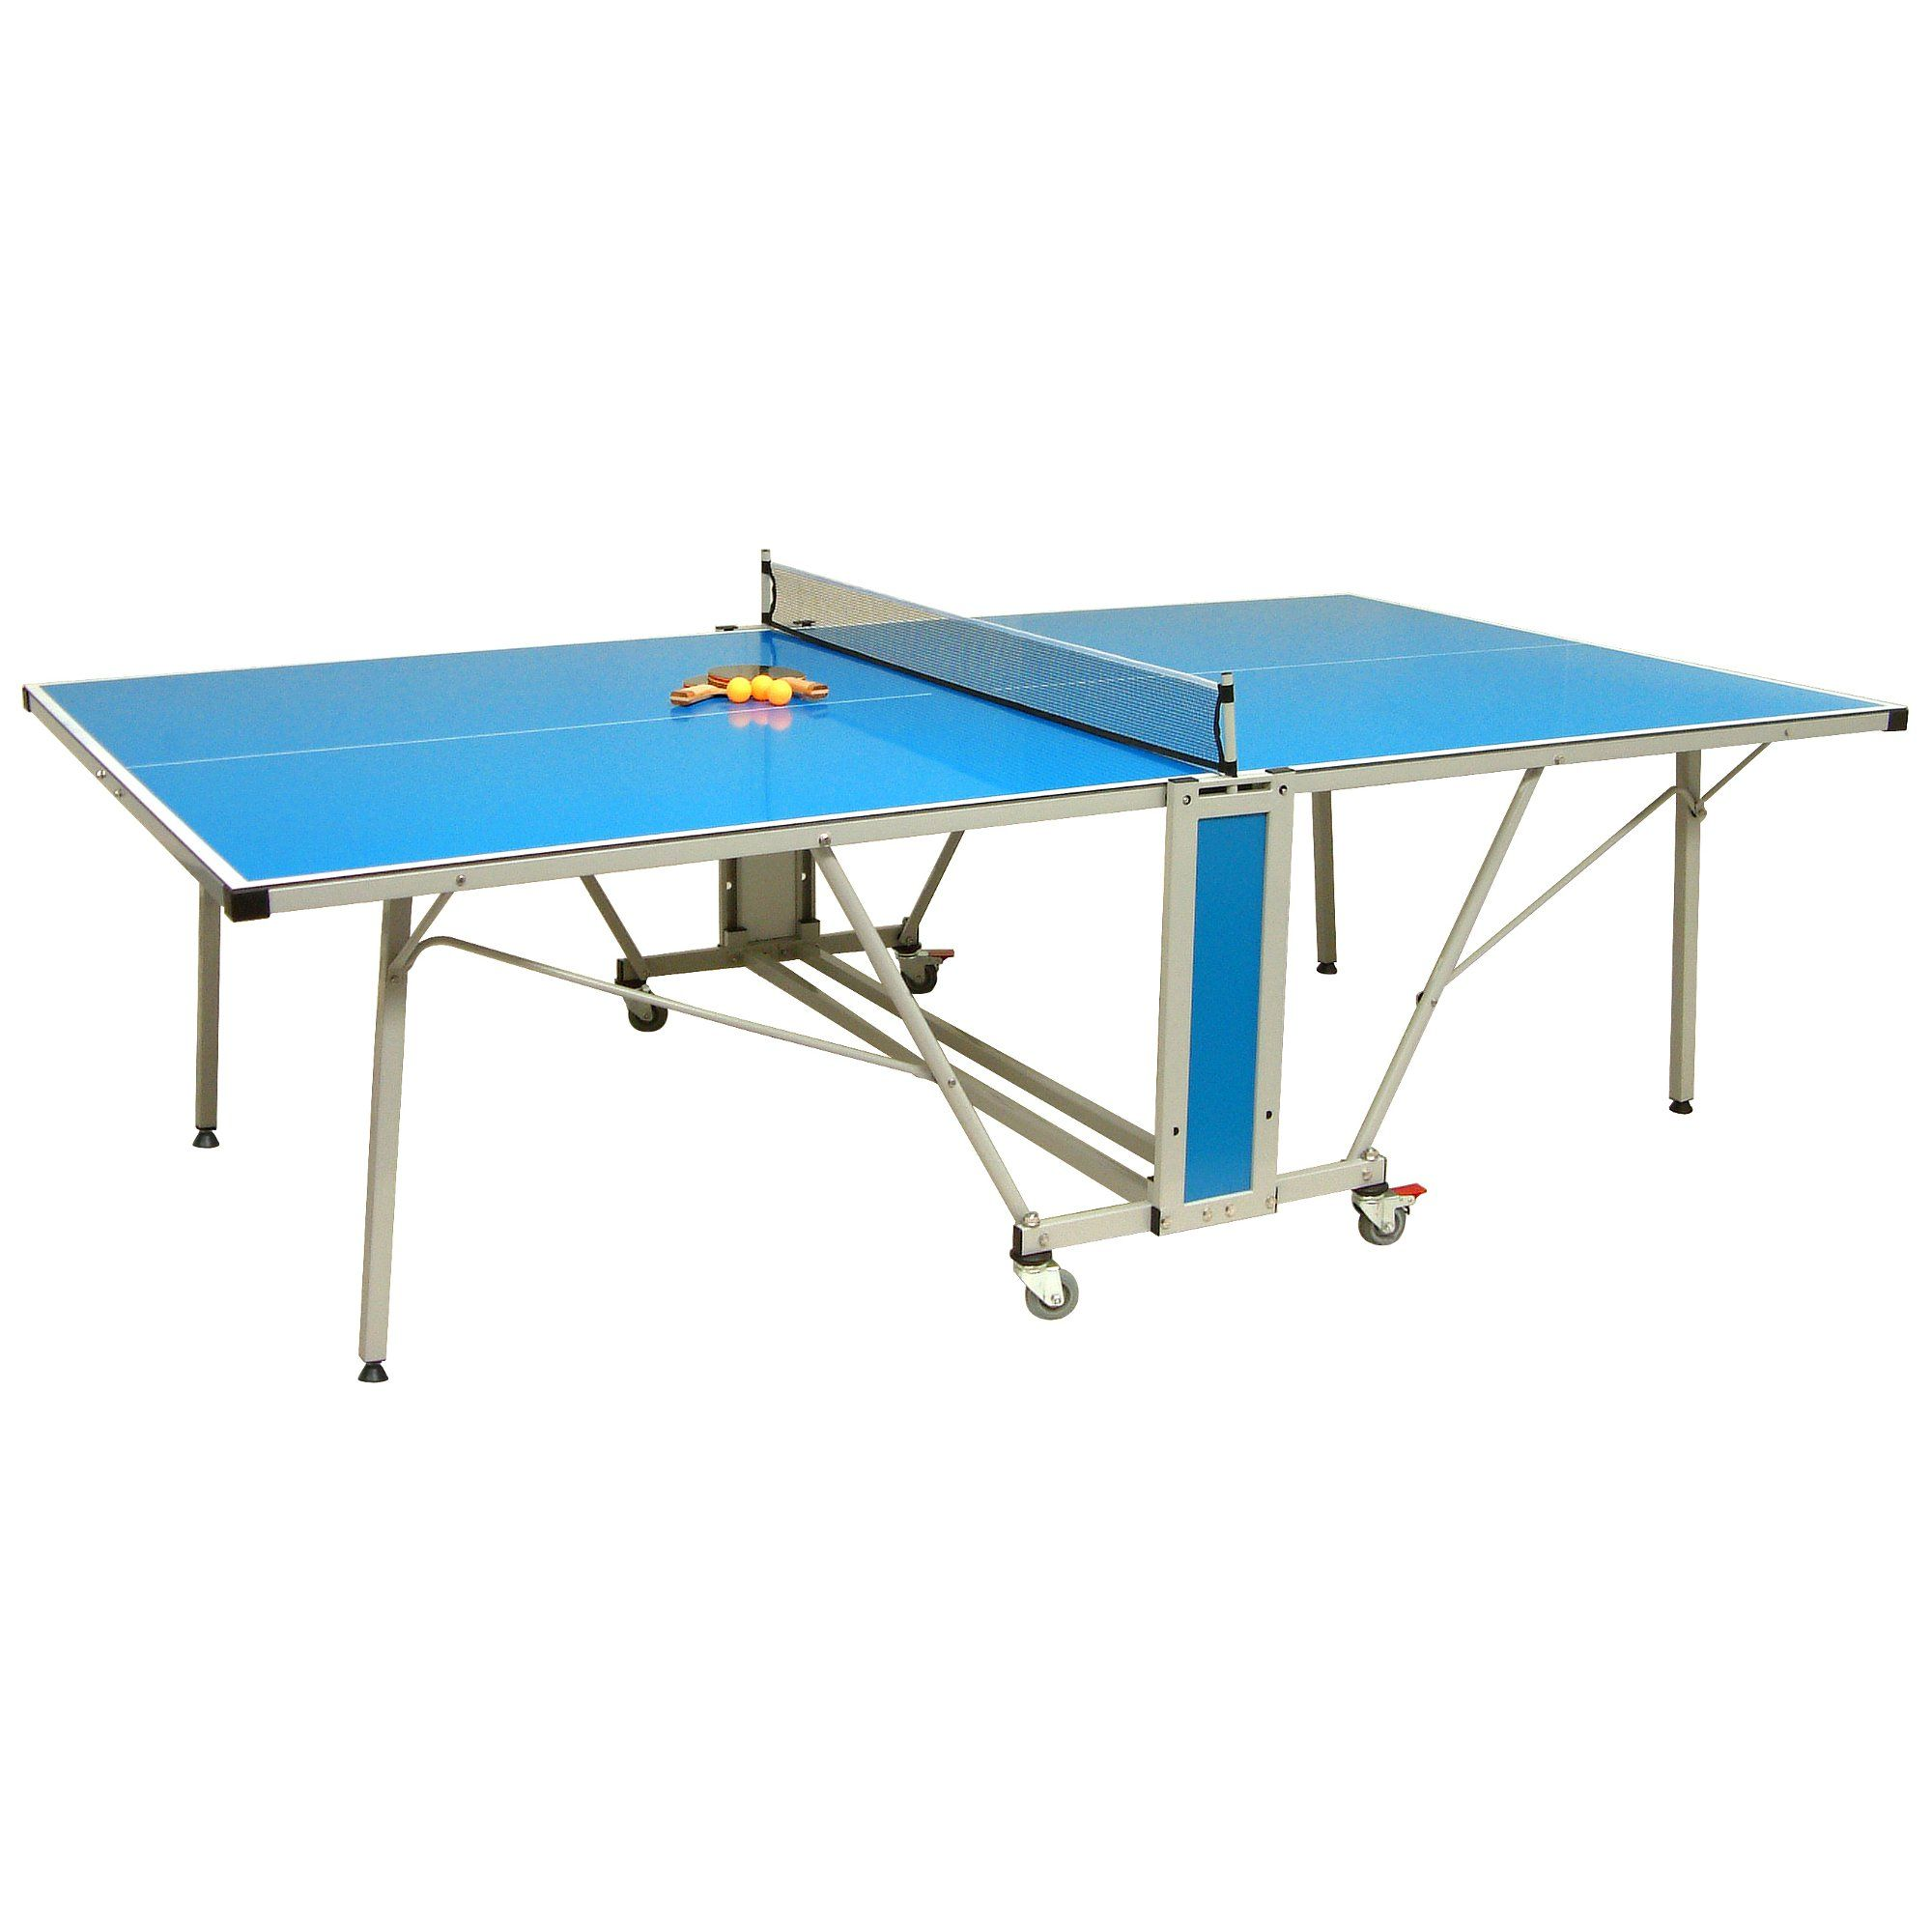 Mightymast team extreme outdoor table tennis table - Weatherproof table tennis table ...